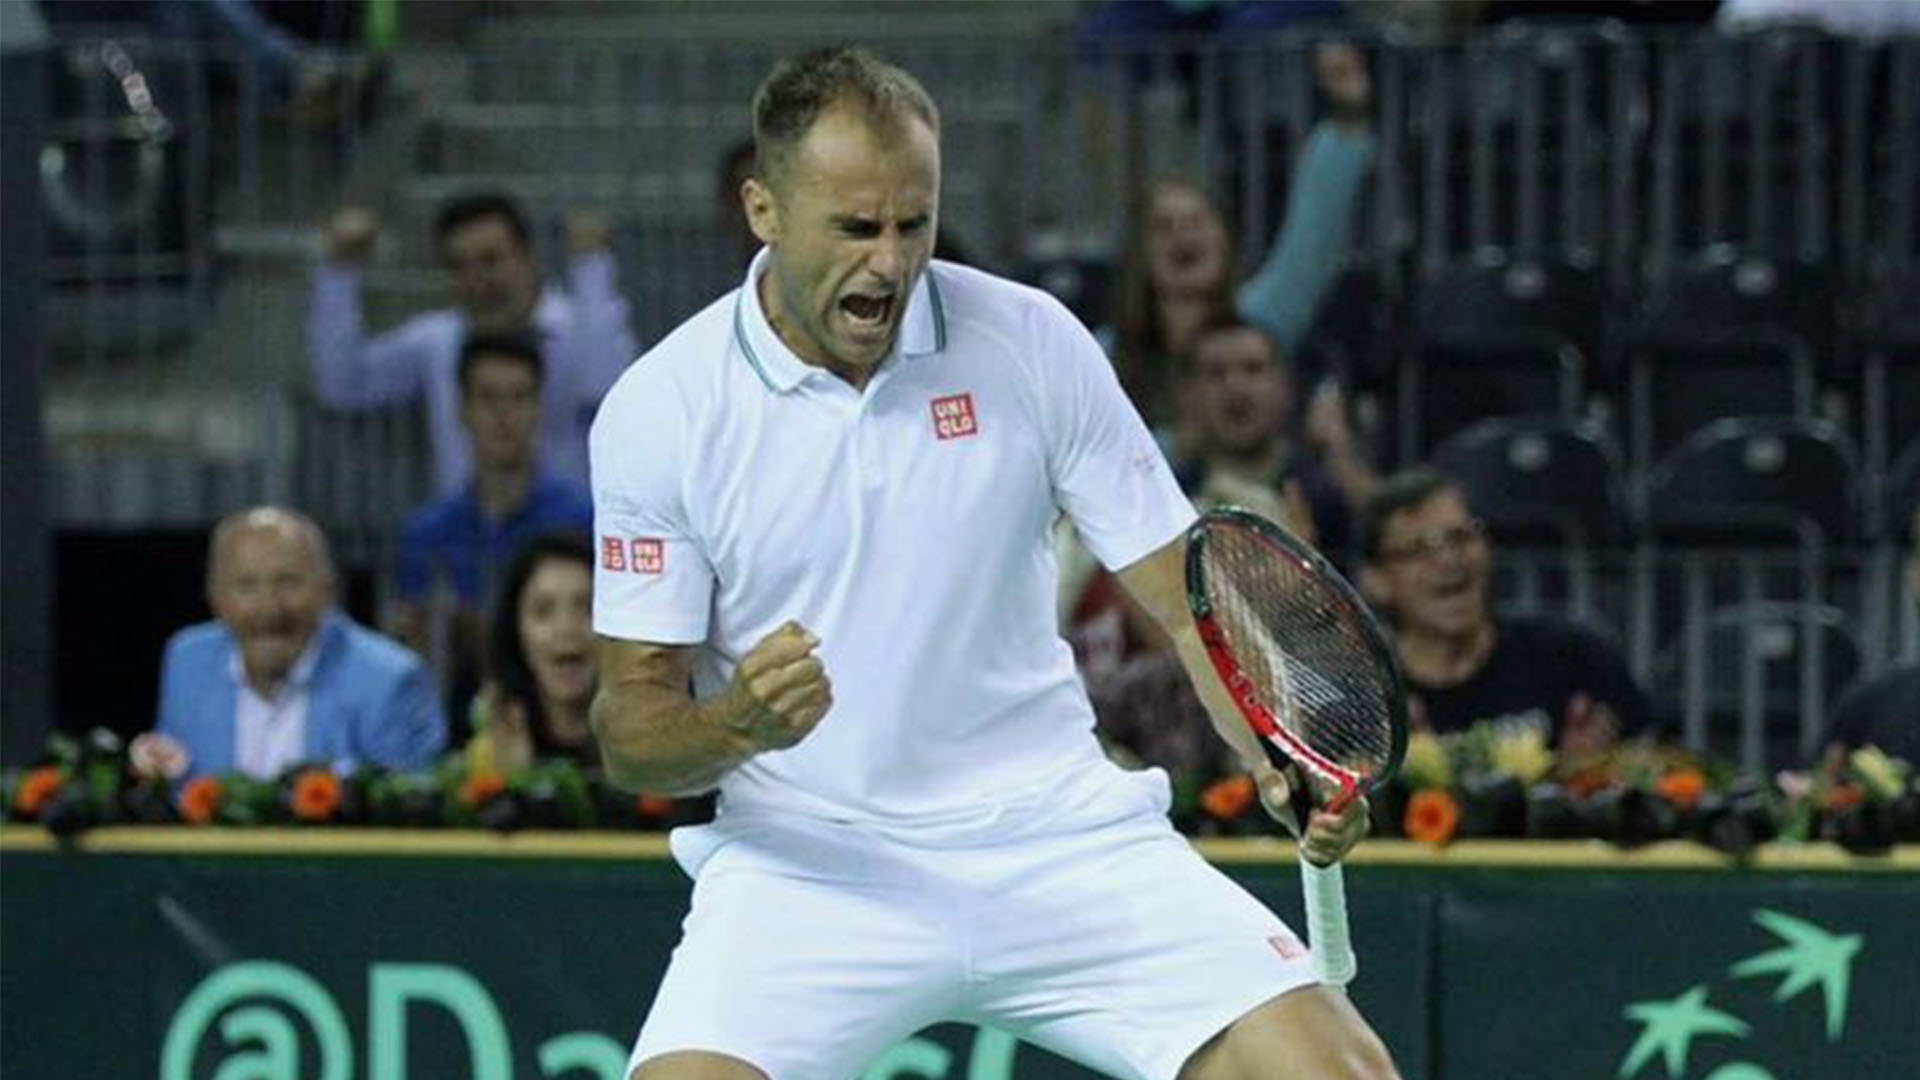 Marius Copil during the Cupa Davis match against Spain